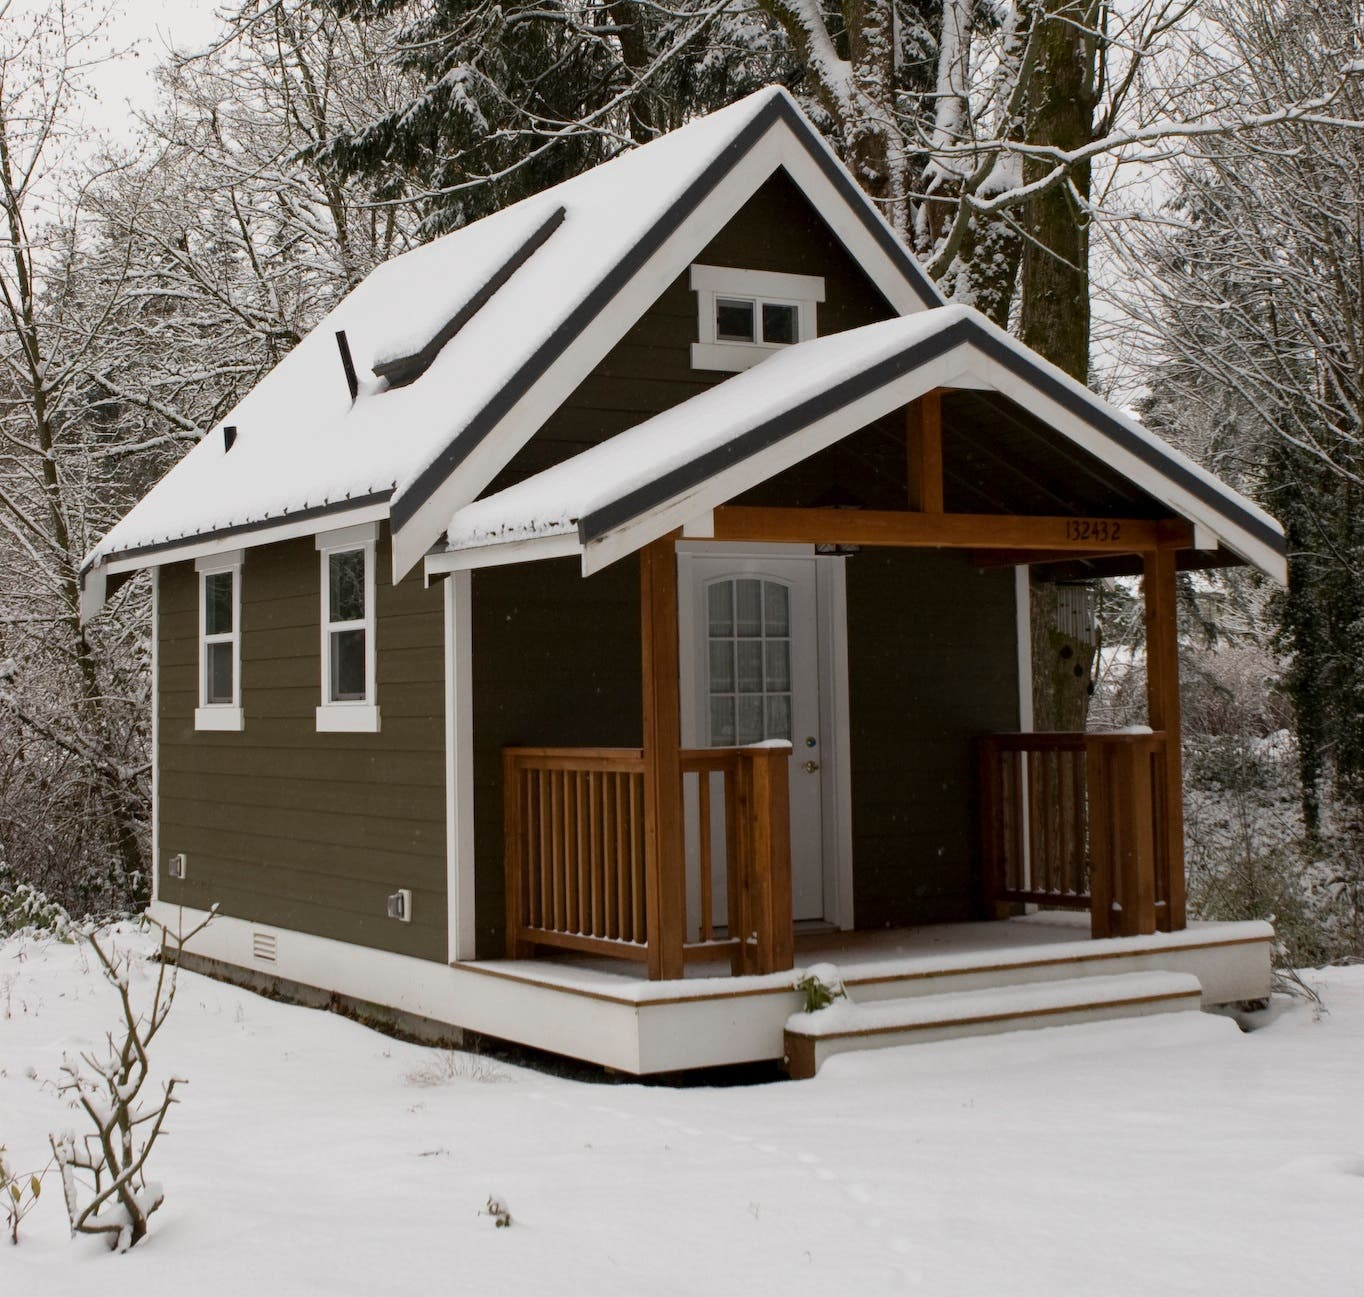 Tiny house articles Small house plans